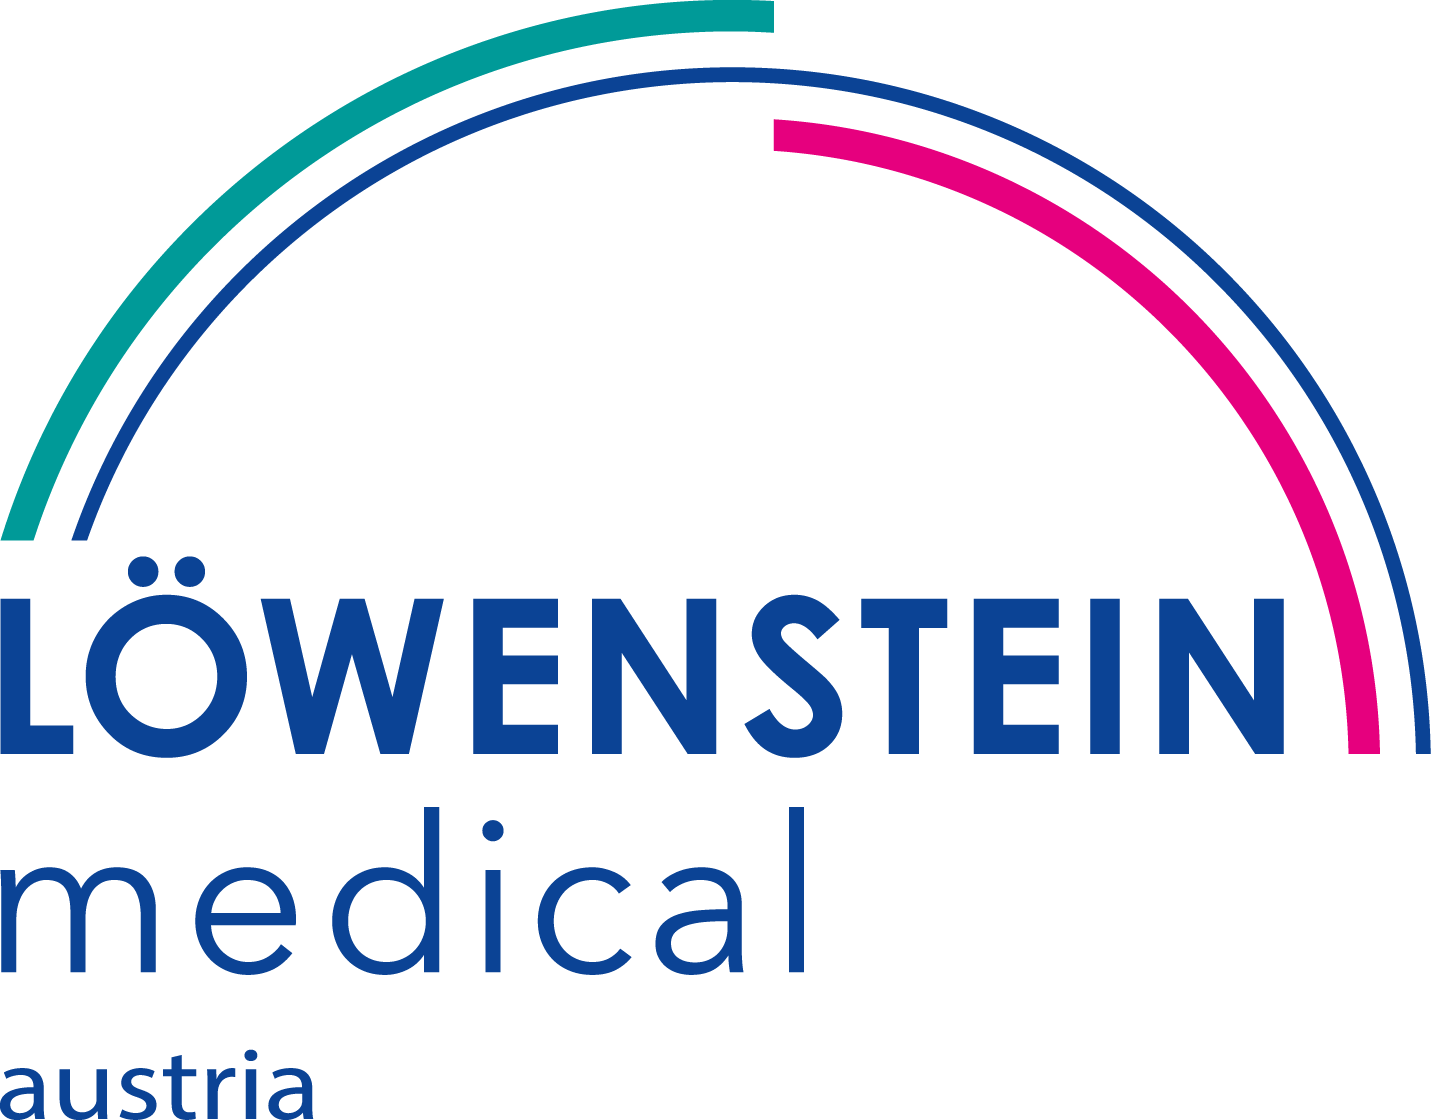 HUL_Logo_Medical_austria_11_2015